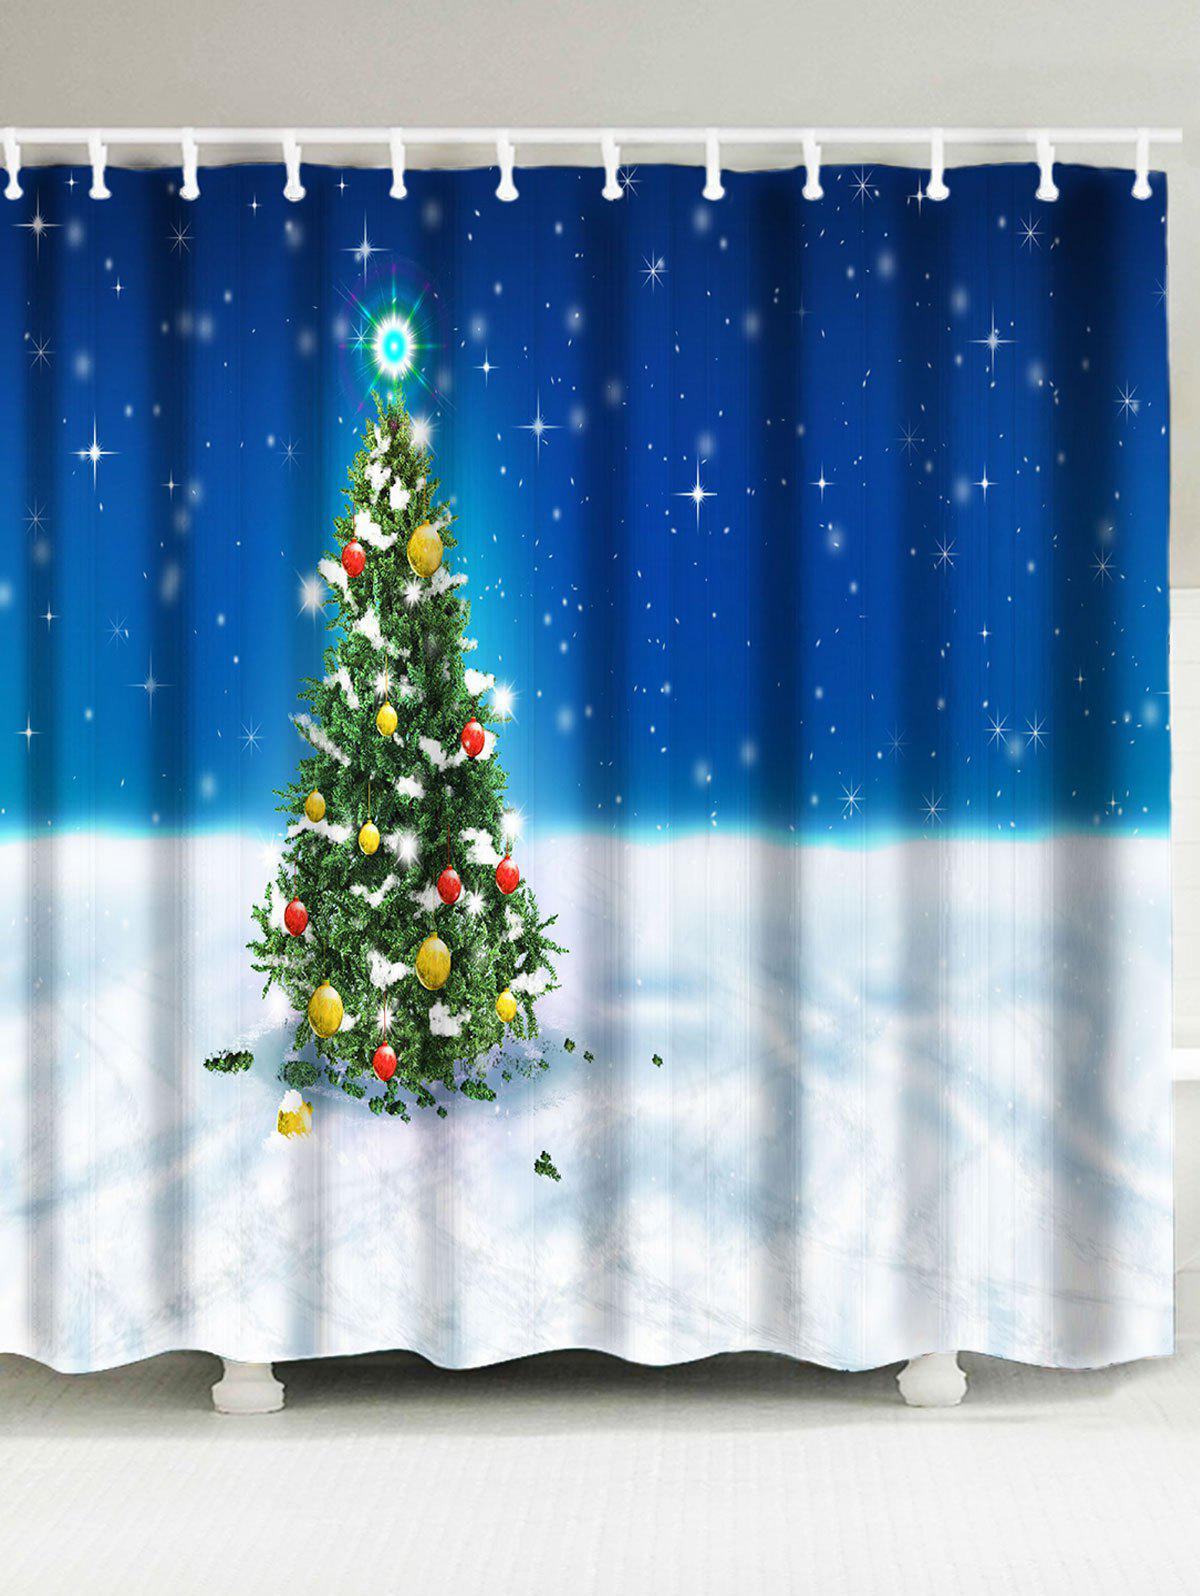 Christmas Tree Snowfield Patterned Bath Shower Curtain forest snowscape patterned shower curtain